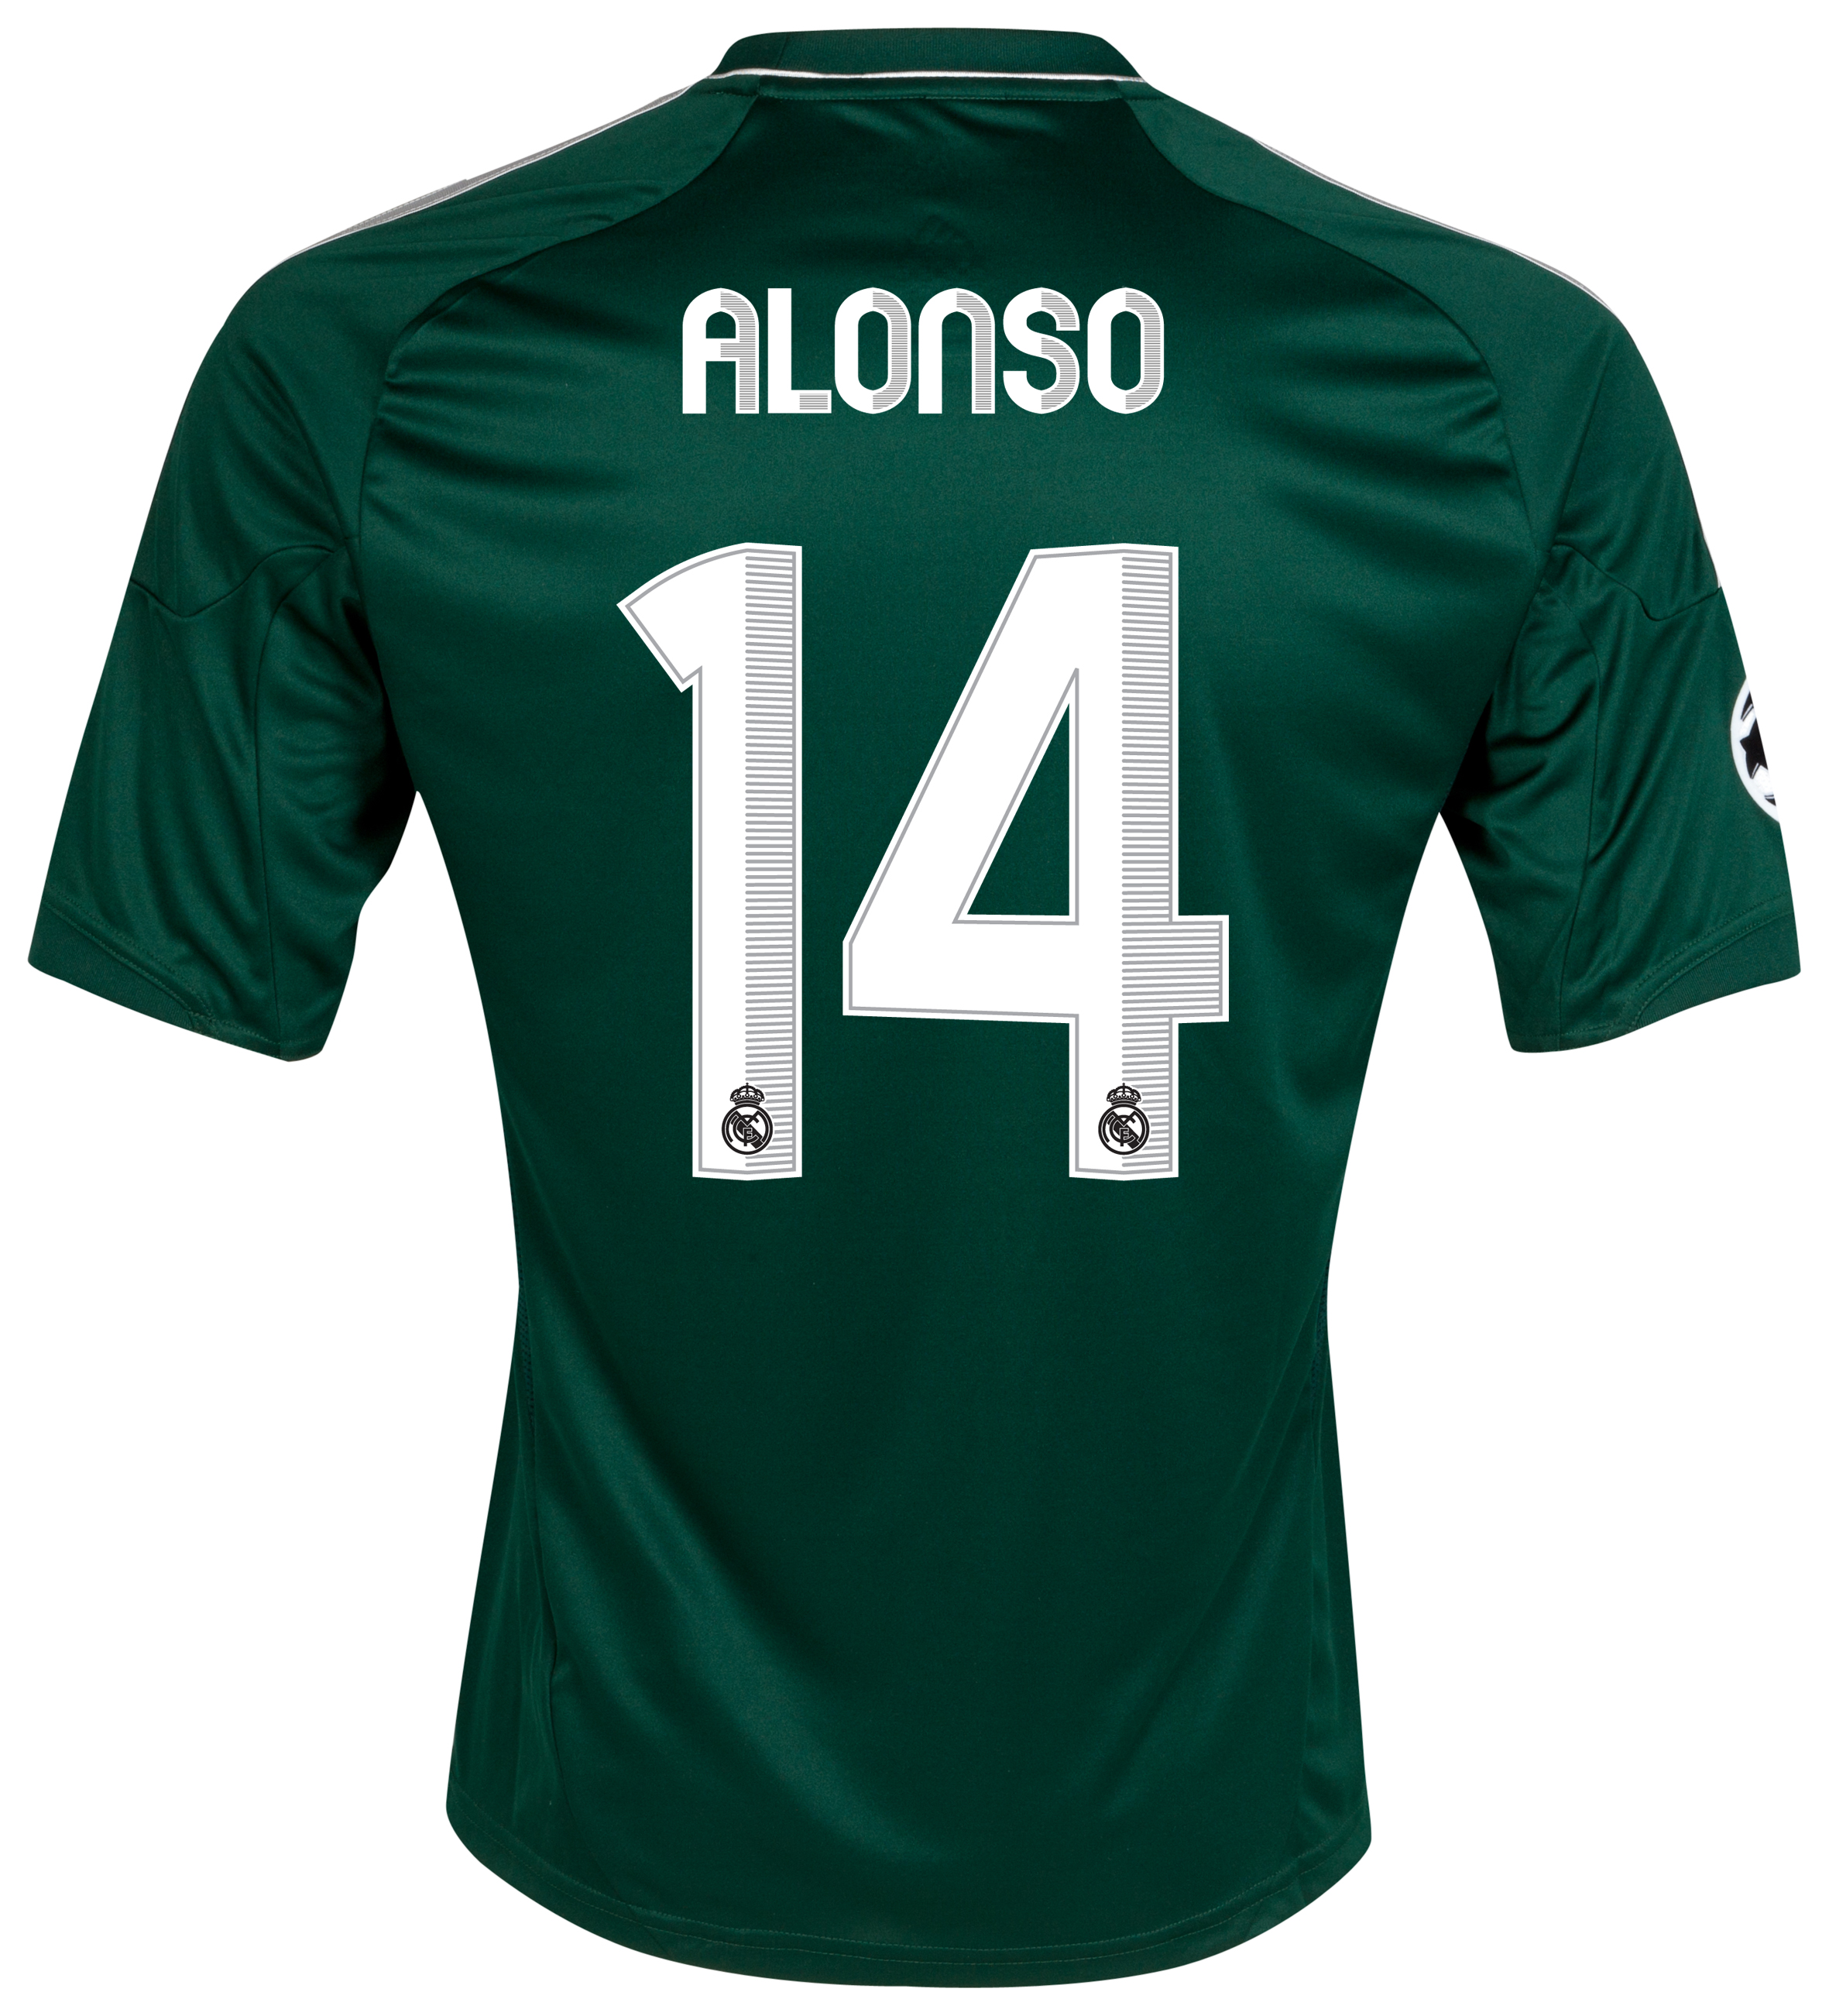 Real Madrid UEFA Champions League Third Shirt 2012/13 - Kids with Alonso 14 printing